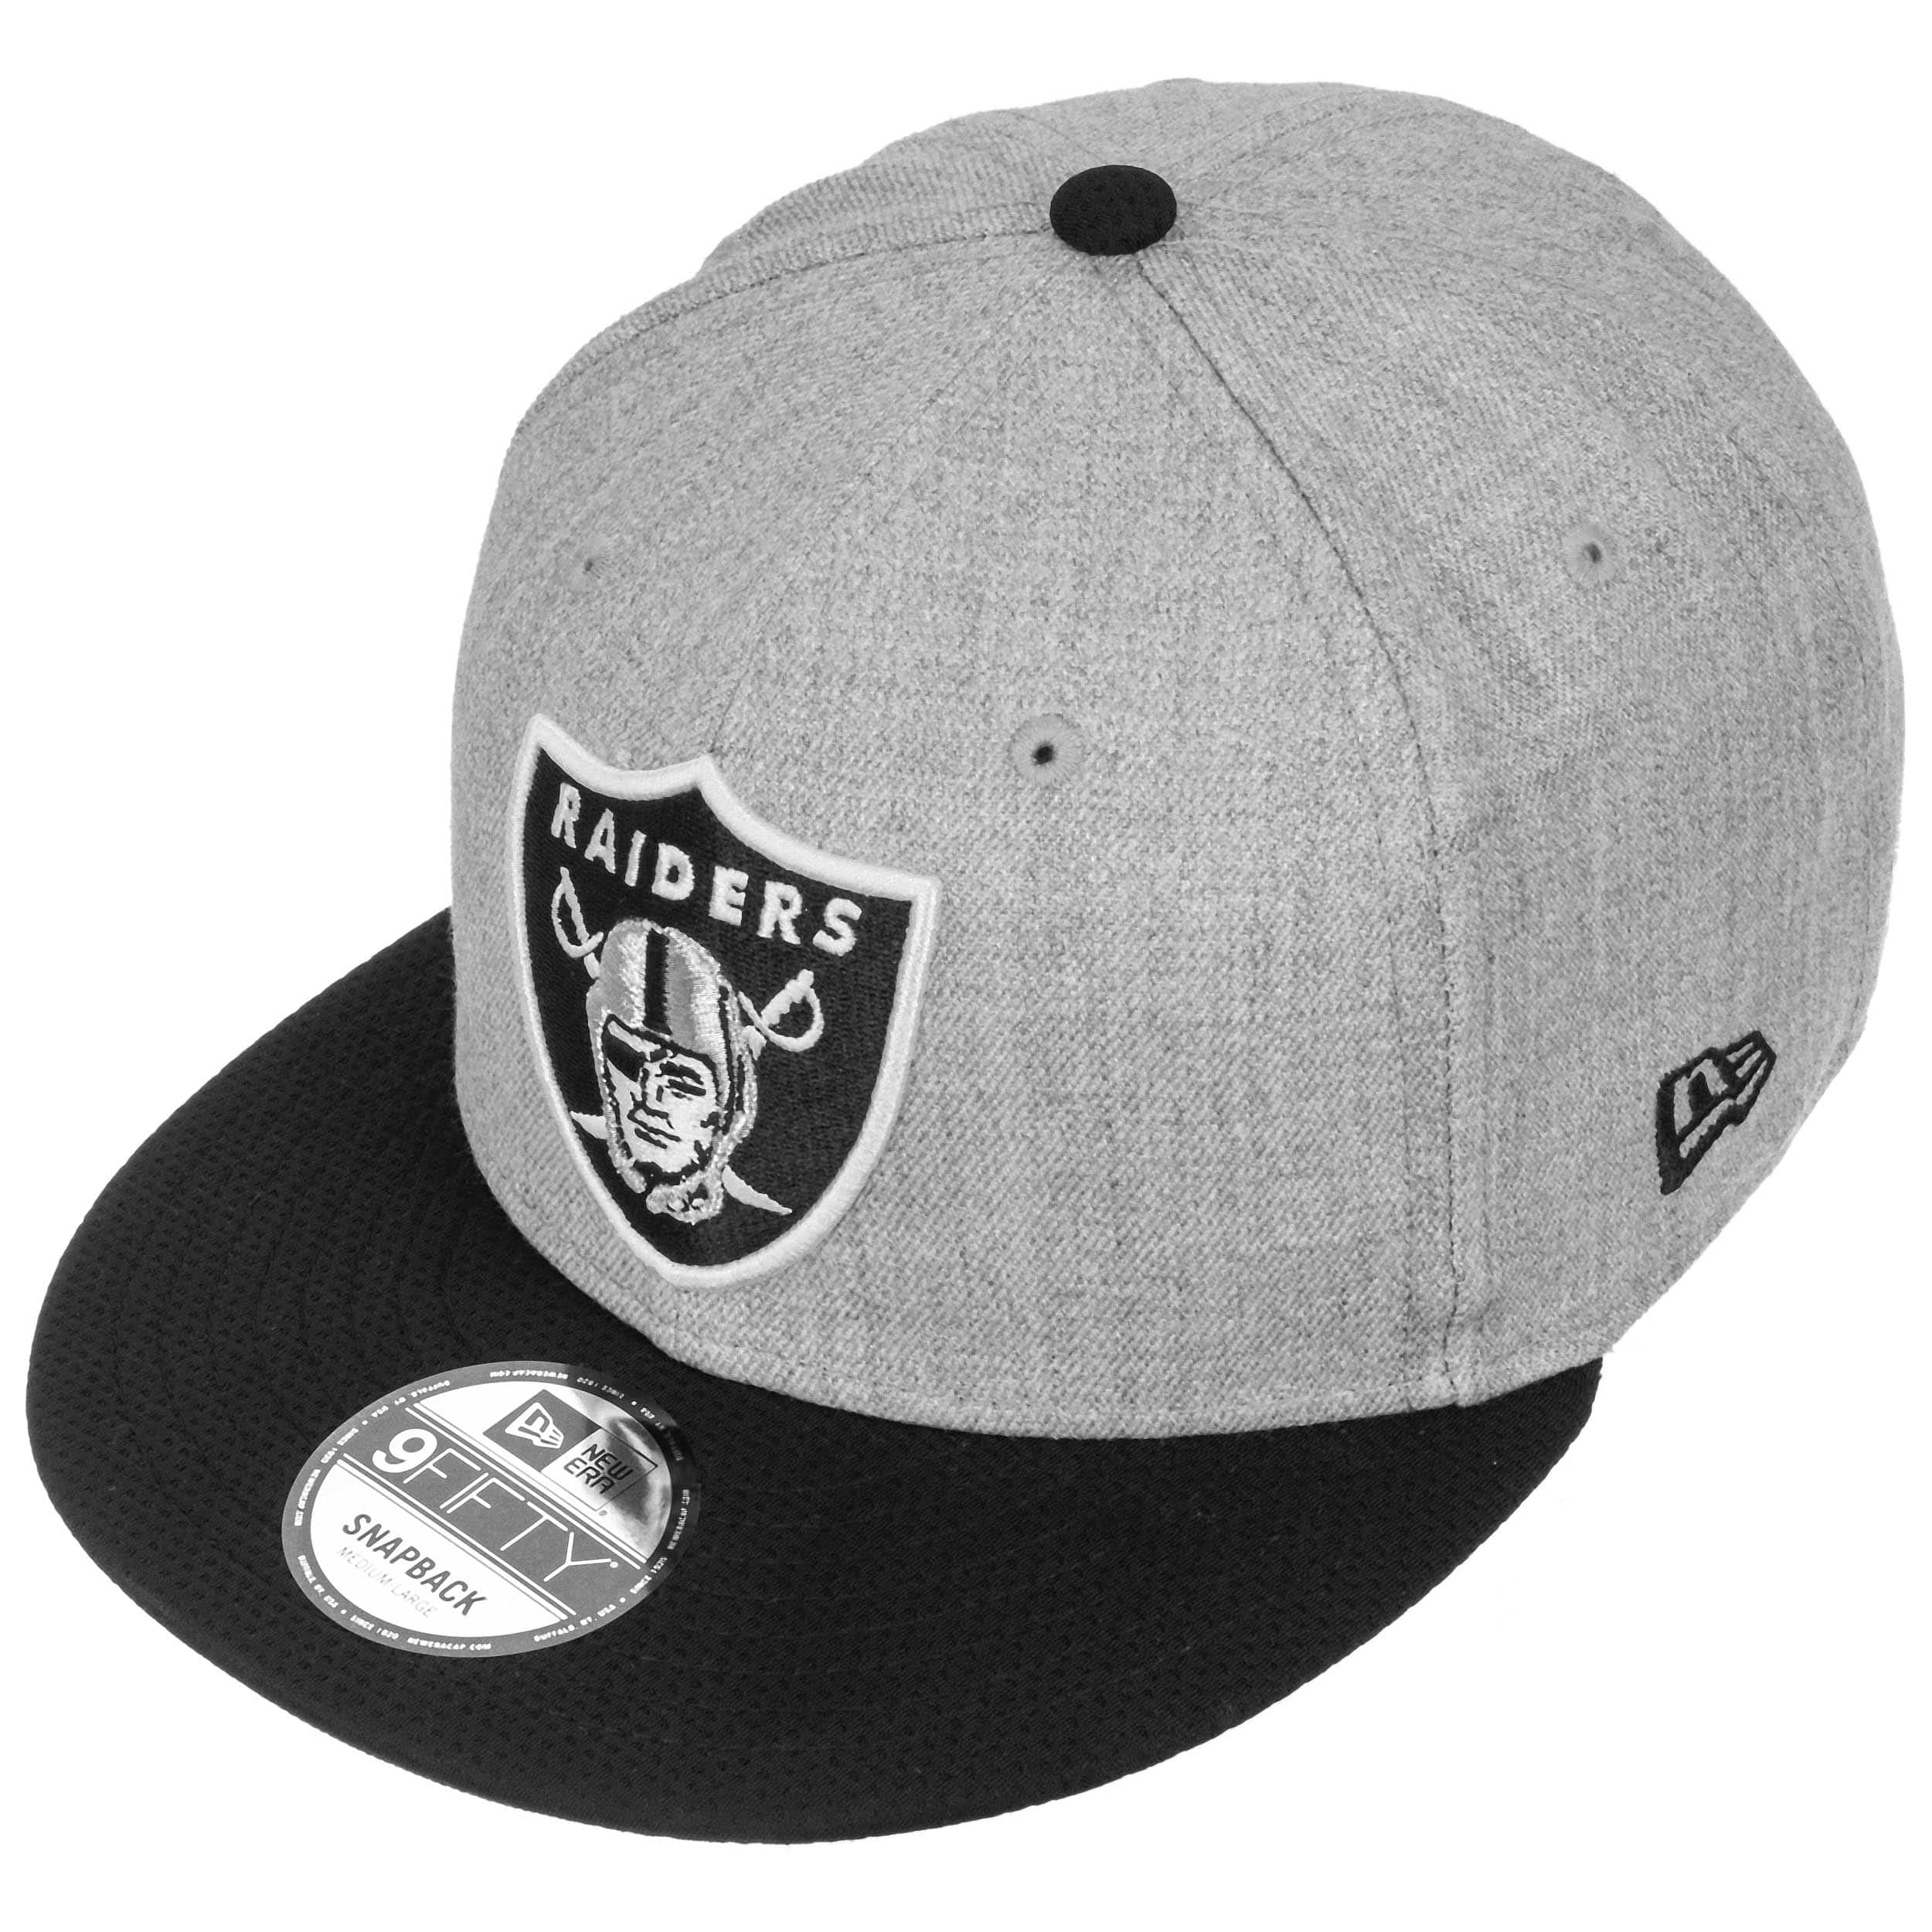 4a09bbe09aaa3 Gorra 9Fifty Heather Raiders by New Era - Gorras - sombreroshop.es